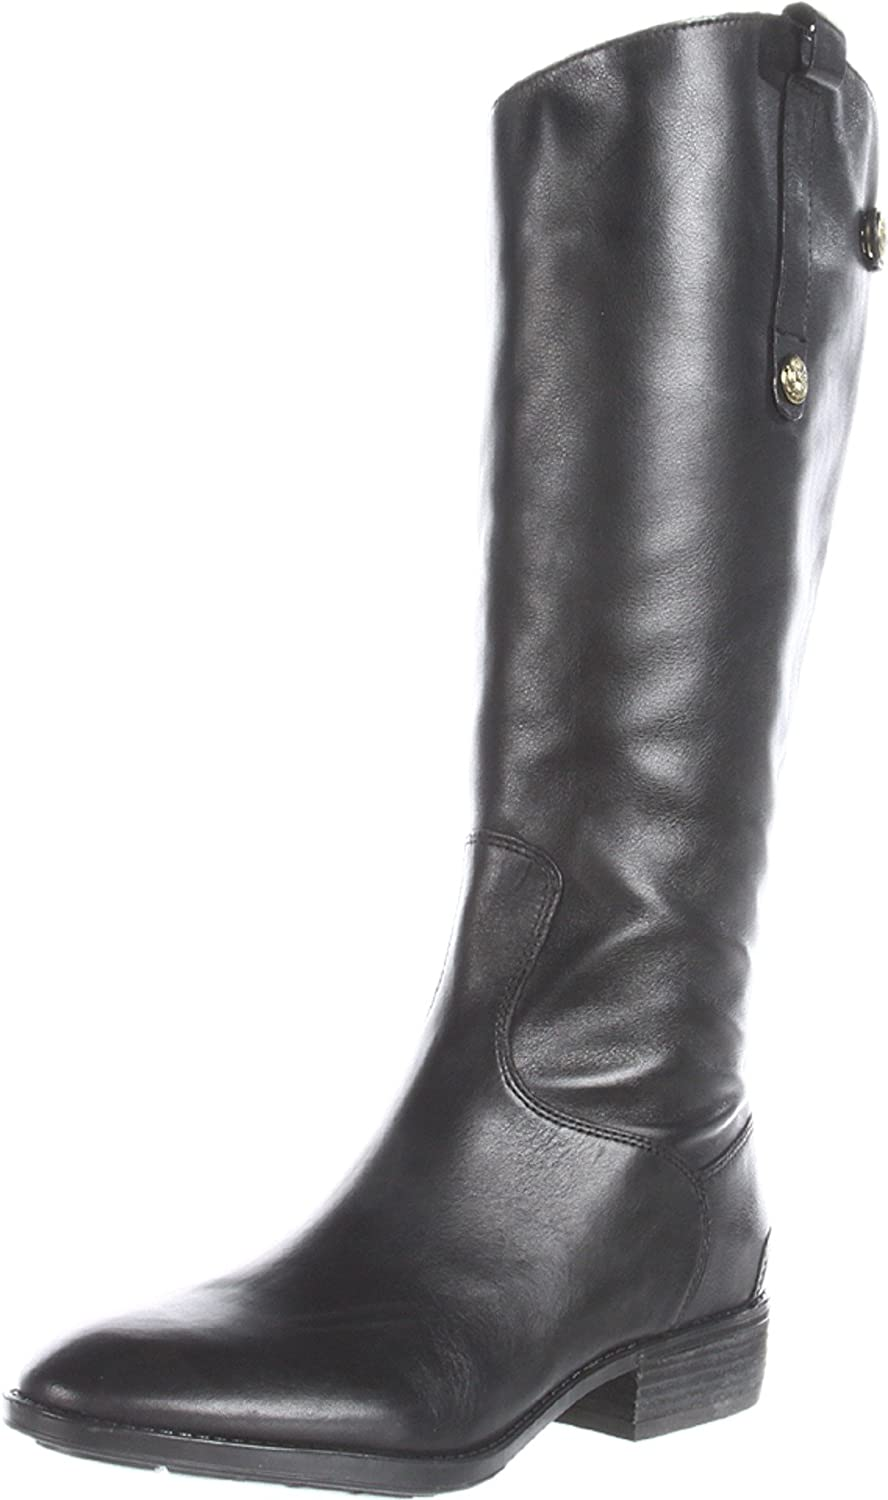 Sam Edelman Women's Penny Riding Boot B007FNCA1C 5 B(M) US|Black Leather